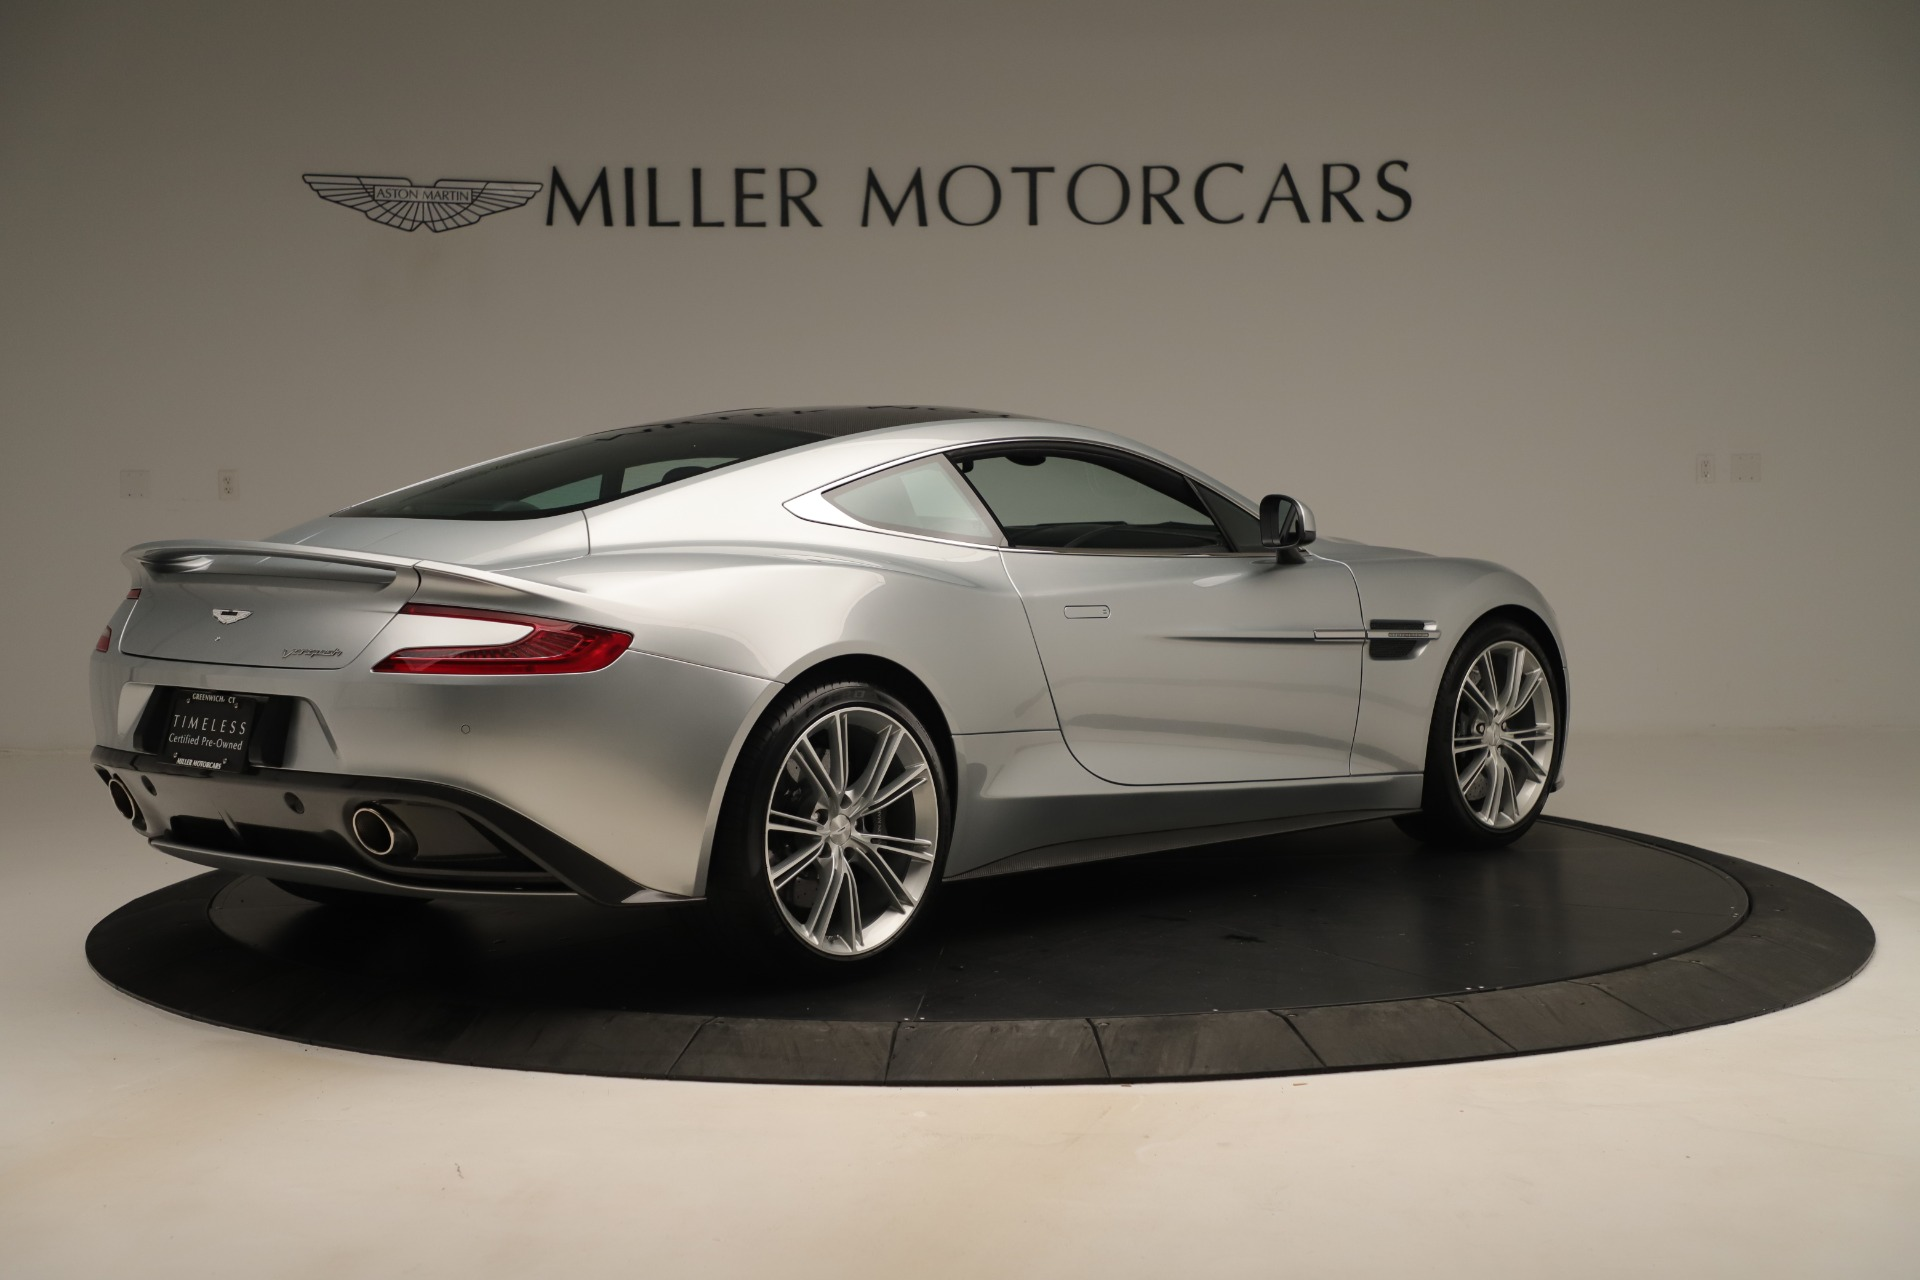 Used 2014 Aston Martin Vanquish Coupe For Sale In Greenwich, CT 3445_p7